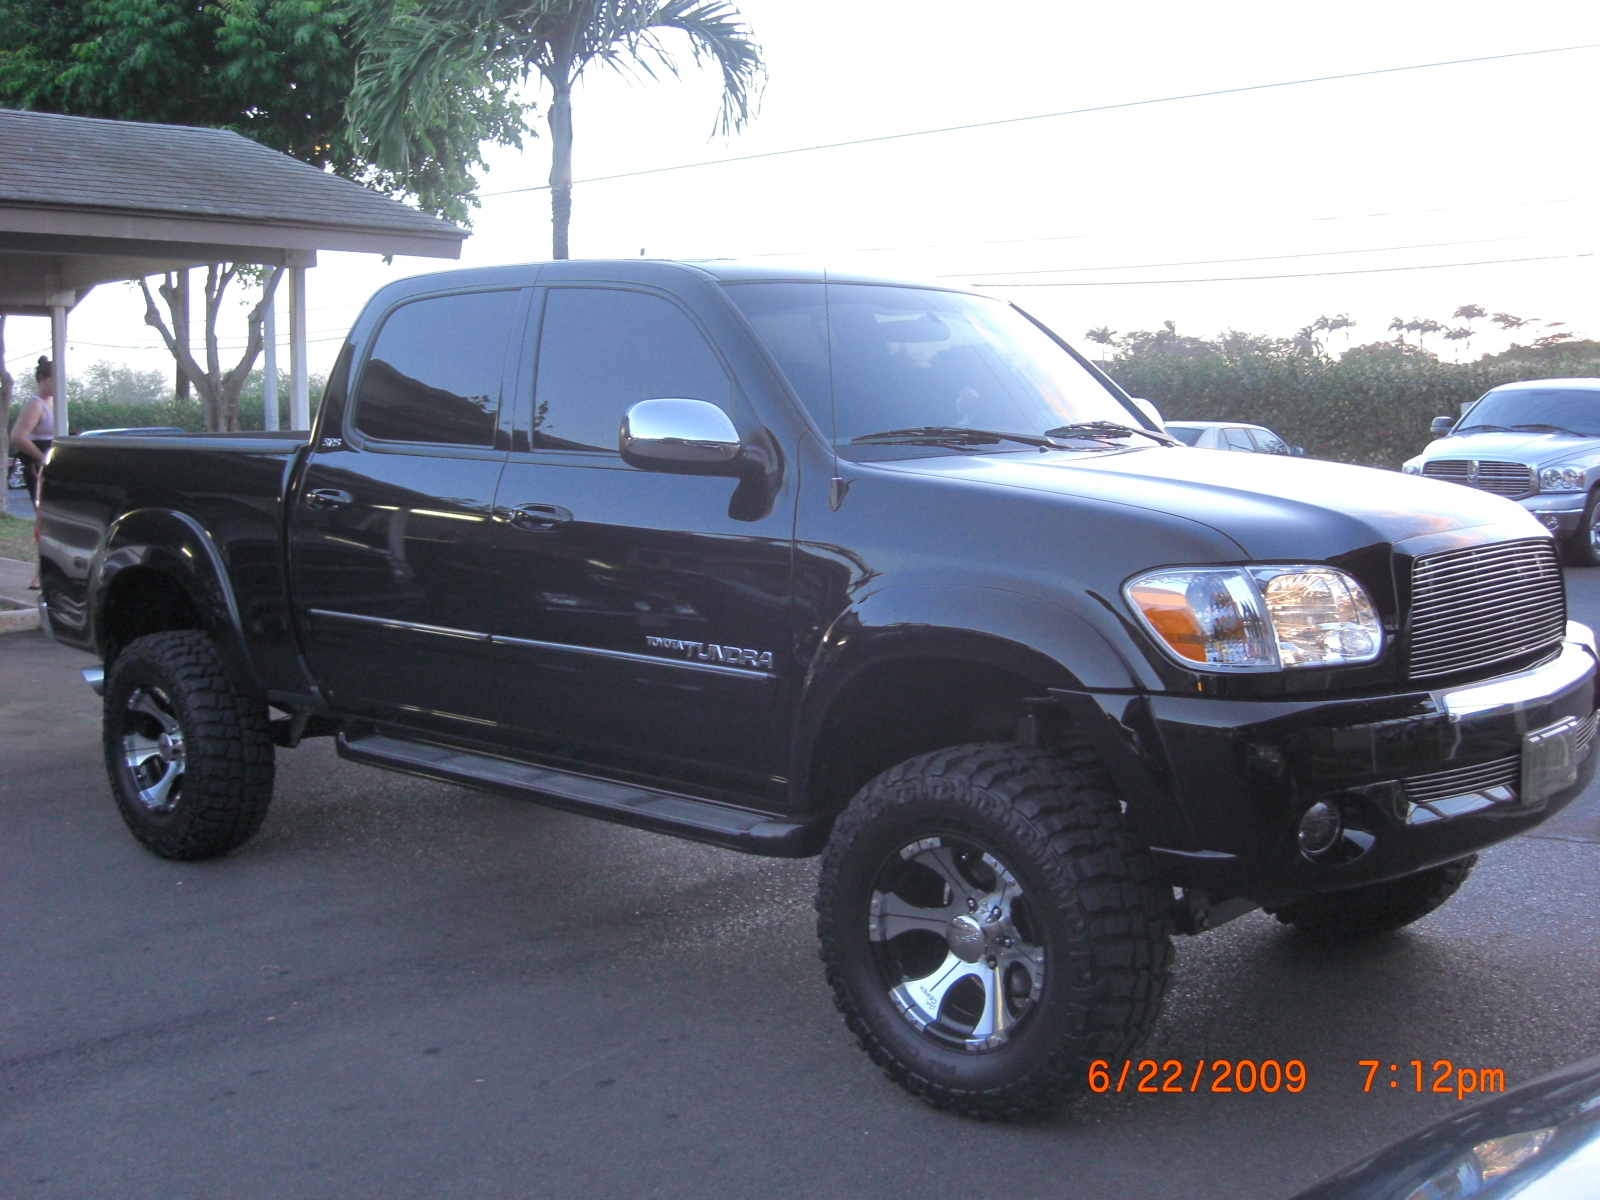 ecko 1 2006 toyota tundra access cab specs photos modification info at cardomain. Black Bedroom Furniture Sets. Home Design Ideas